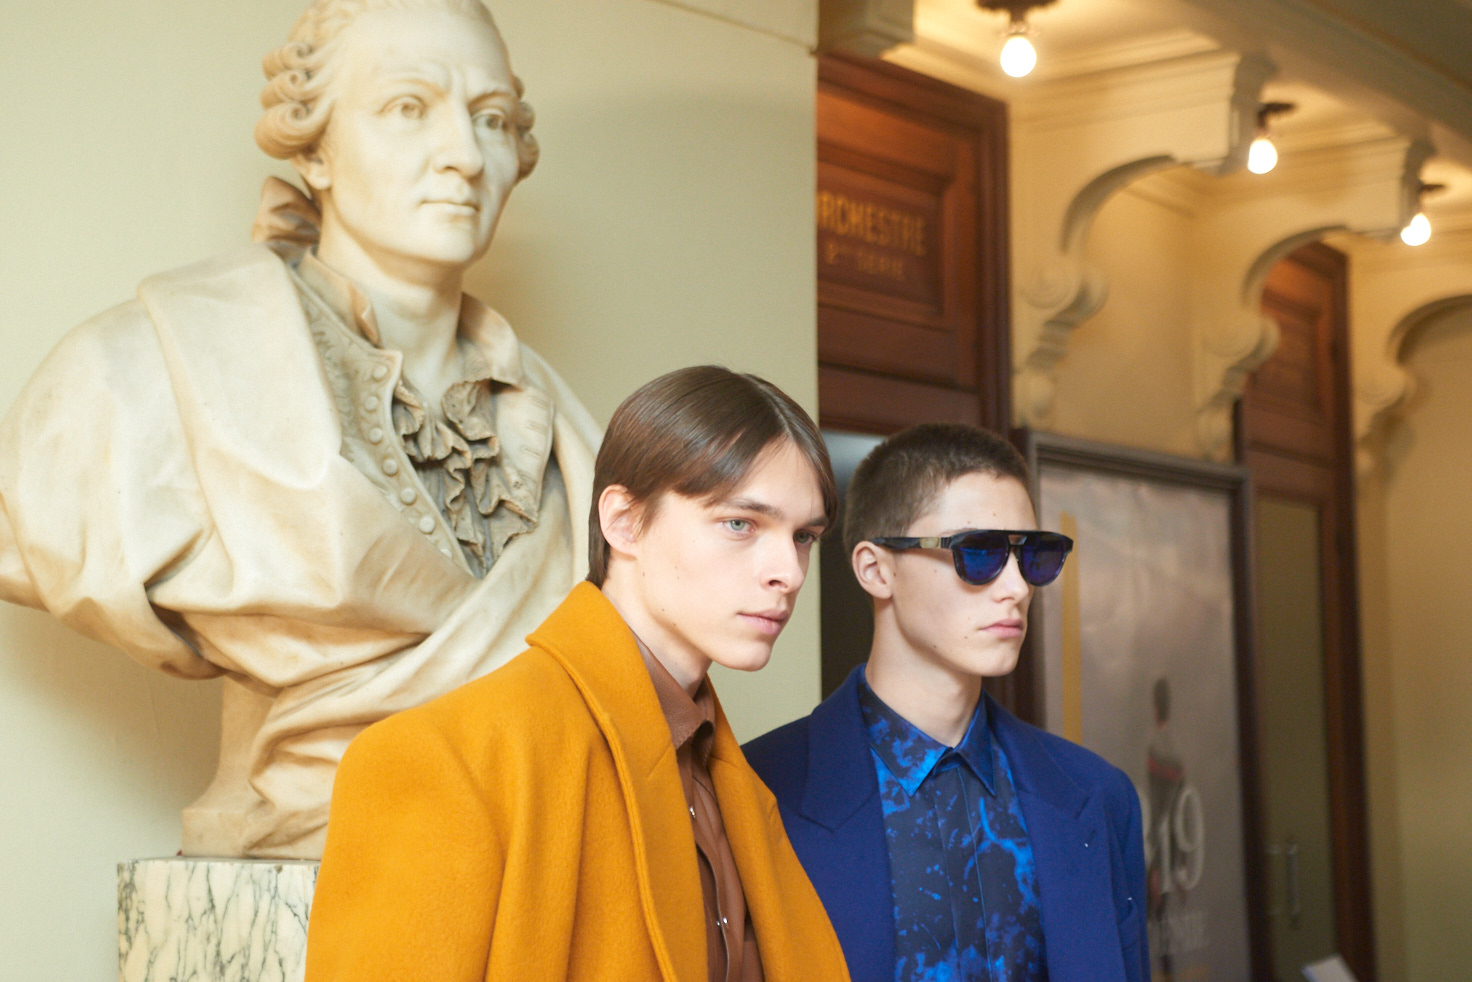 BERLUTI_FW19_Backstage_BTBonline_Behind_The_Blinds_Magazine_Hugo denis-queinec_AES2052.jpg